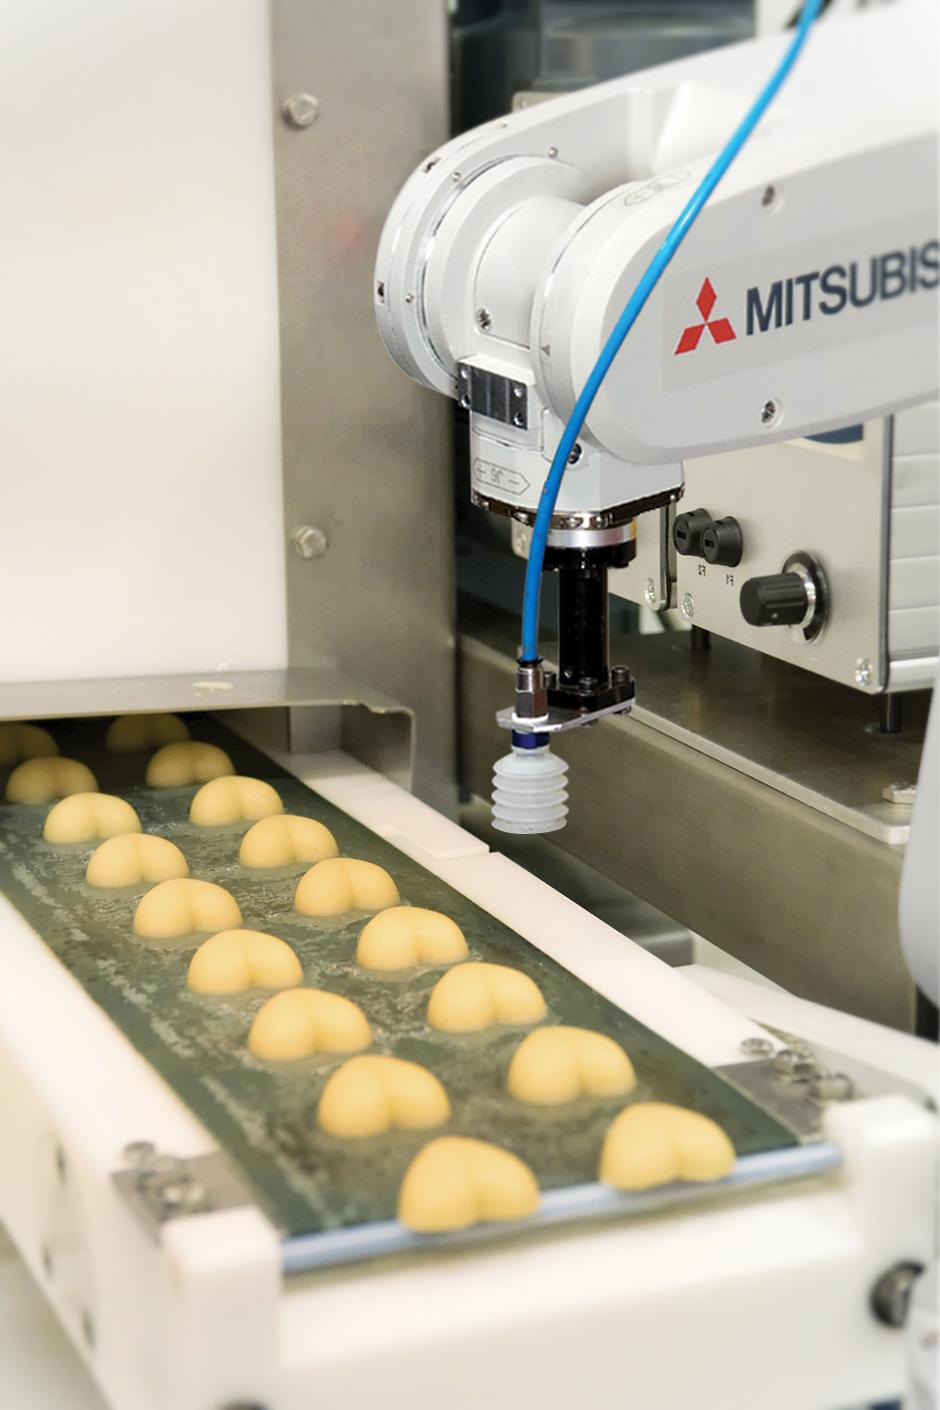 The constant pressure on costs in the food industry means it has a long history of innovating, so is likely to embrace Industry 4.0 quickly and enthusiastically. Source: Mitsubishi Electric Europe BV